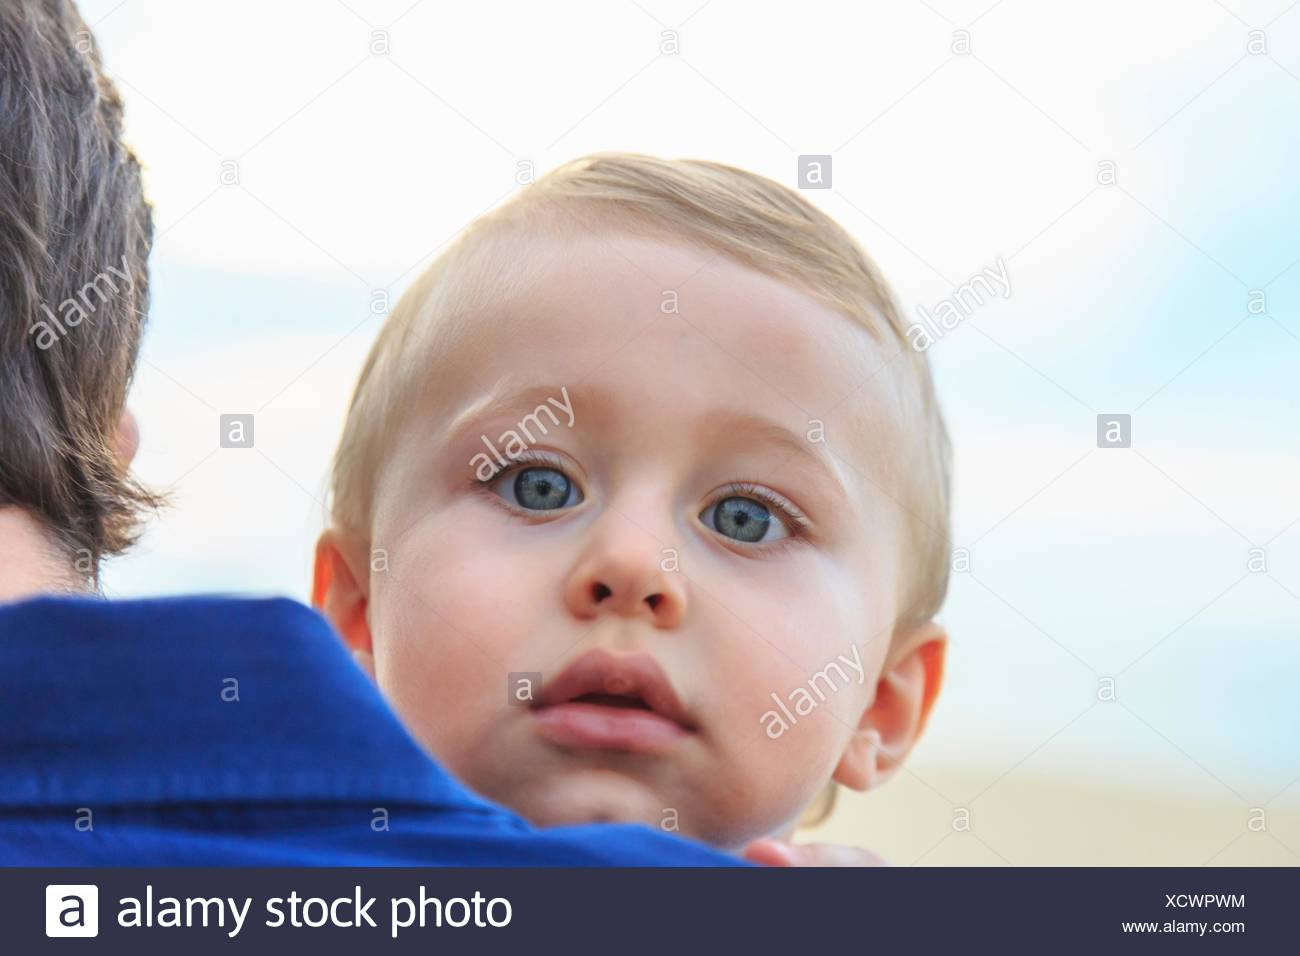 Baby boy looking over father's shoulder - Stock Image